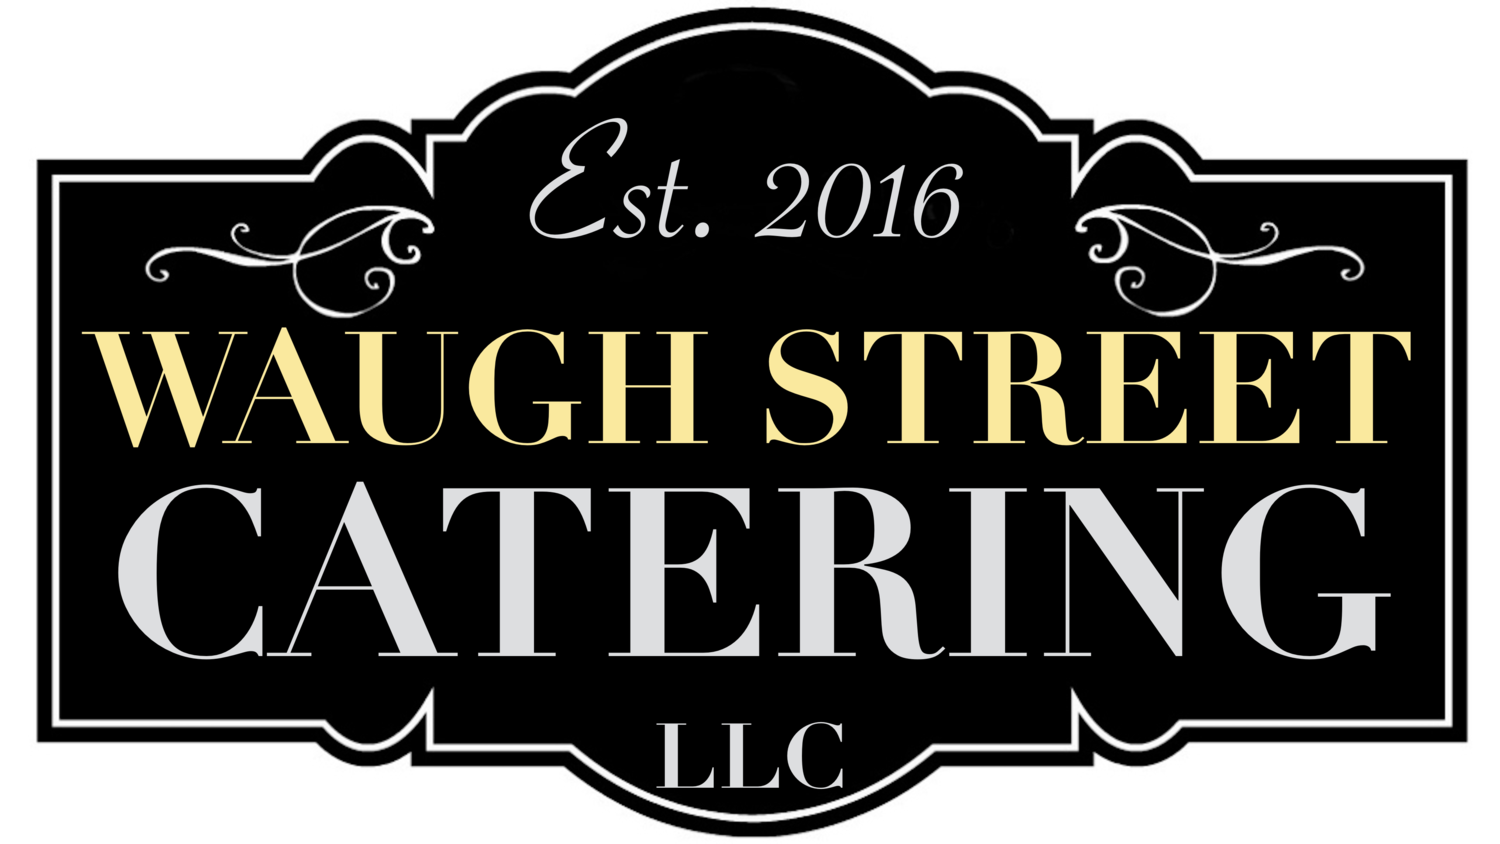 Waugh Street Catering LLC